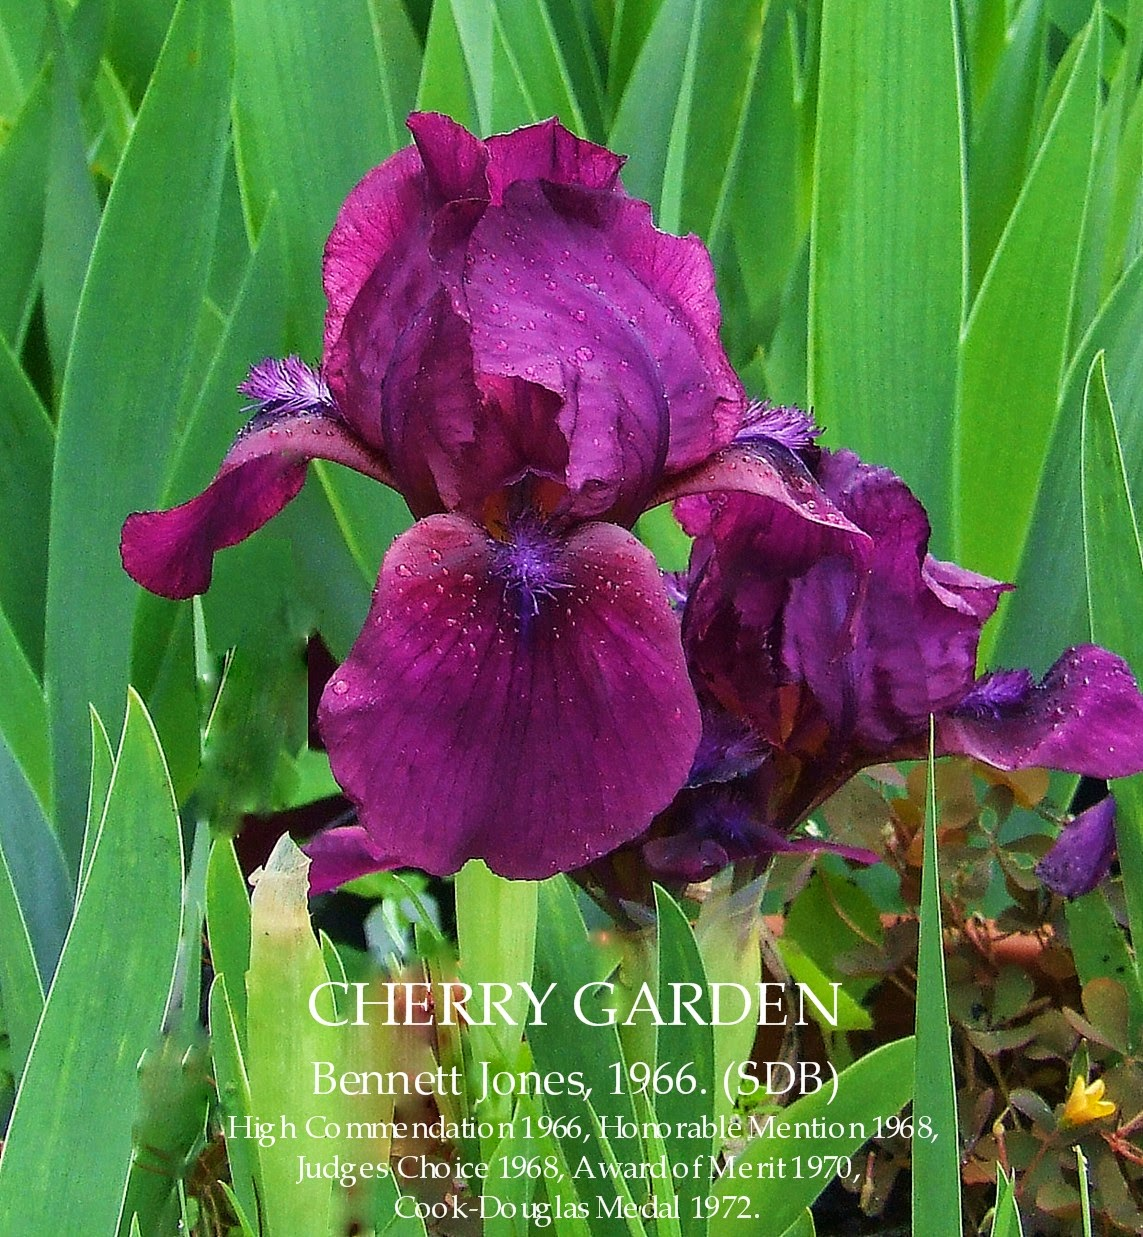 Standard dwarf bearded iris cherry garden heritage irises every spring the iris growers in new zealand await the opening of the first iris flowers in their gardens sometimes even when the last snow is still on izmirmasajfo